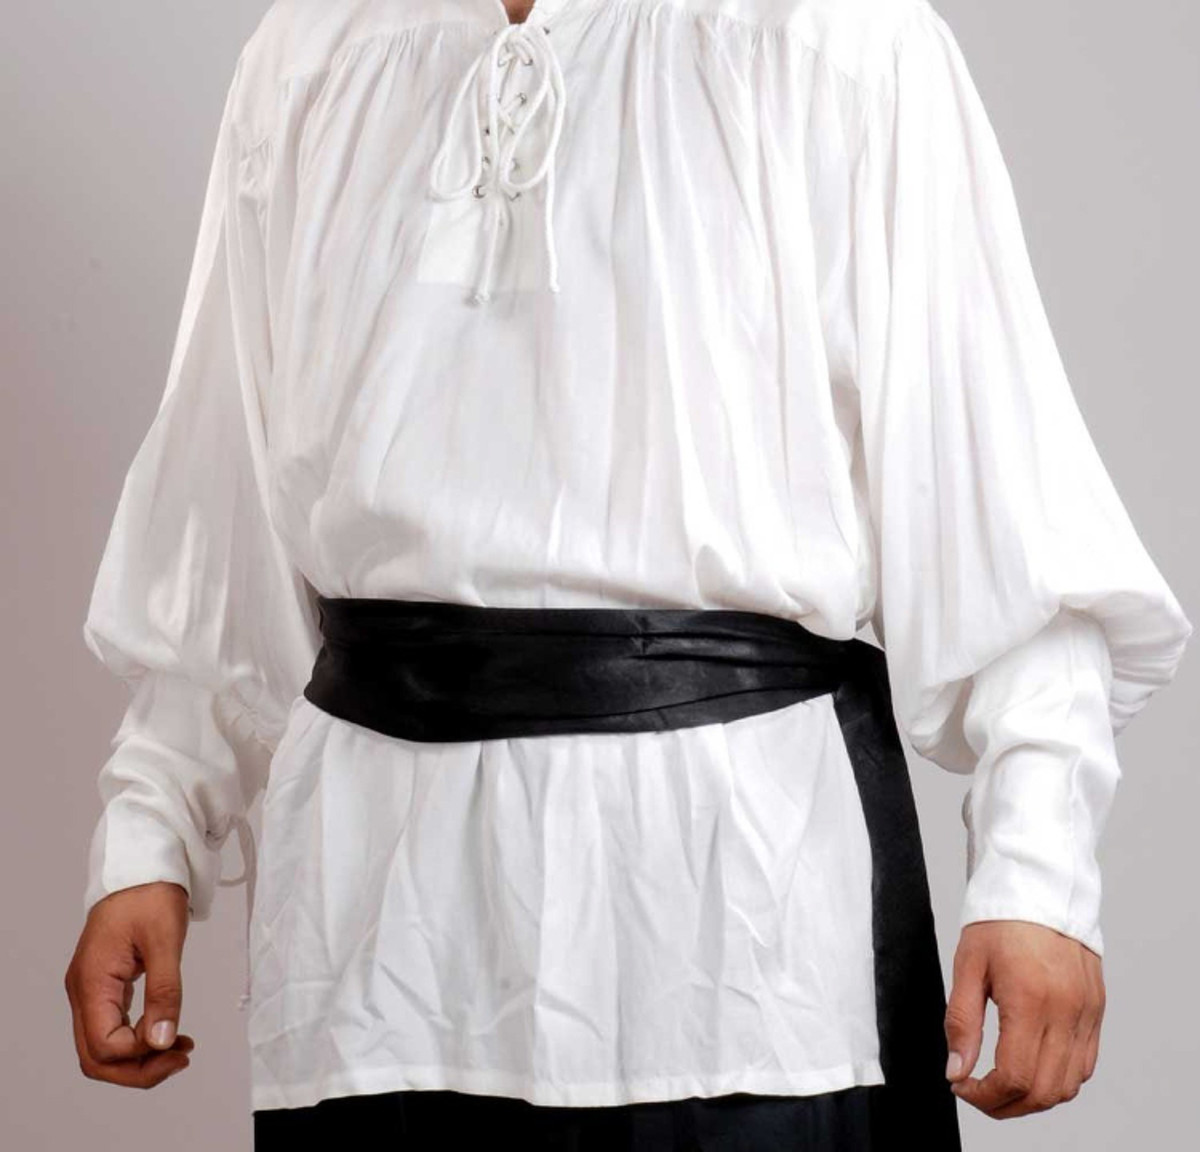 Black waist sash ideal for those buccaneer and pirate style costumes